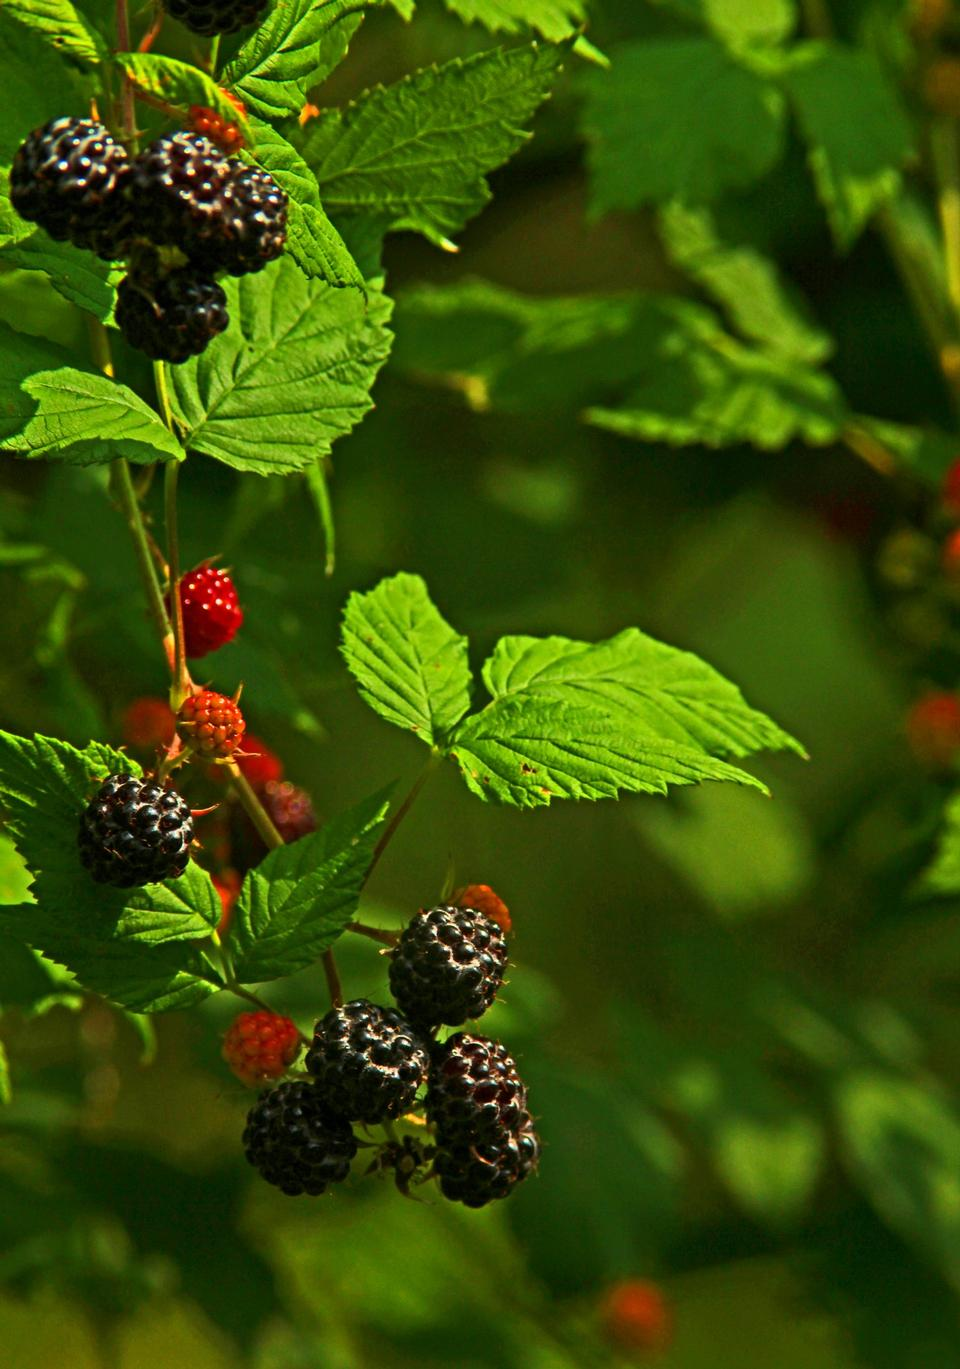 Ripe Black Berries